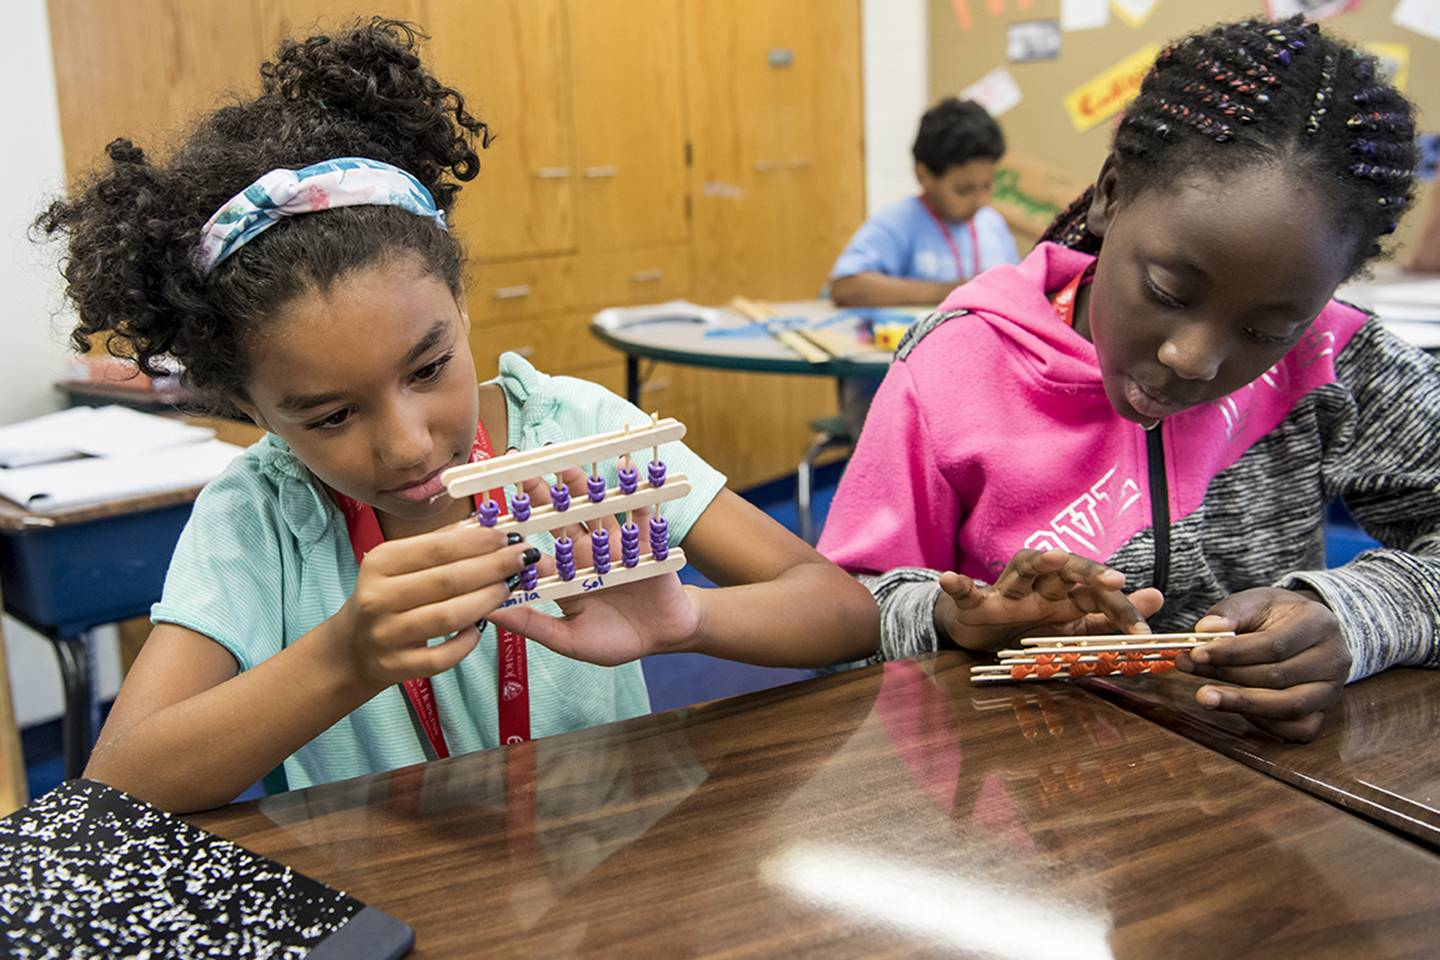 Students make an abacus during their Number Sense class at the CTY Baltimore Emerging Scholars Summer Program at Commodore John Rodgers Elementary/Middle School.